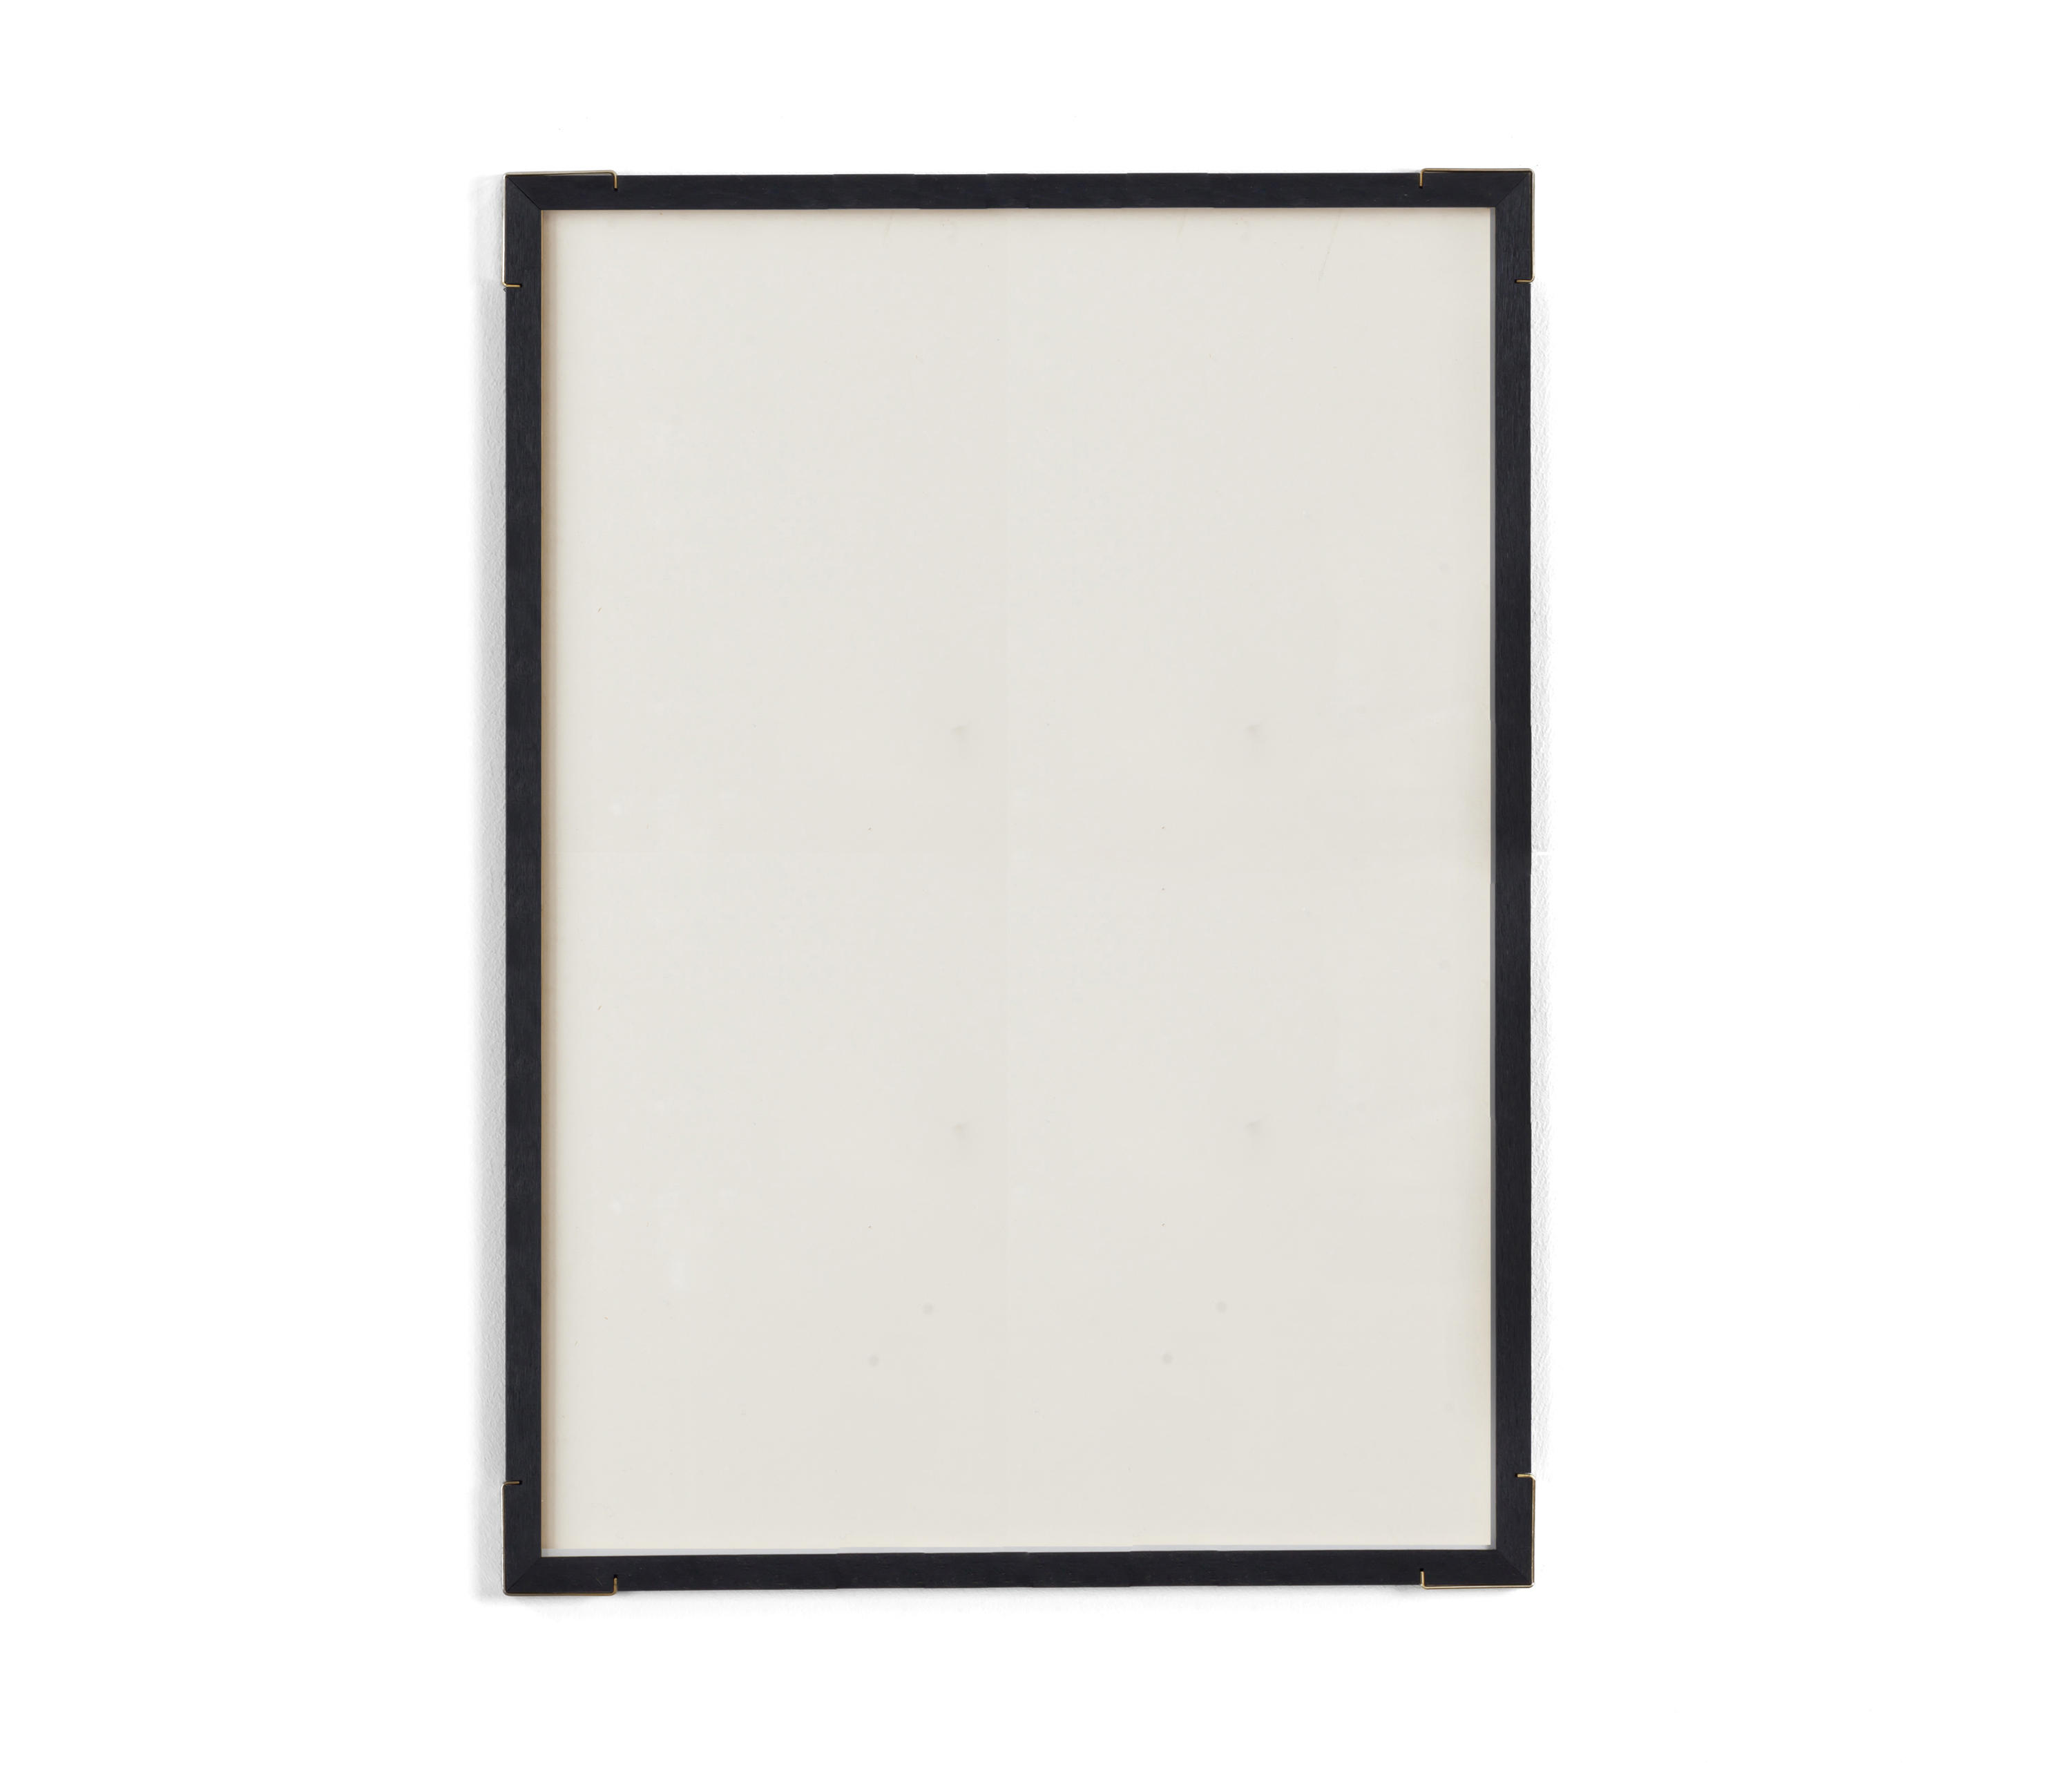 Plexiglas Bouwmarkt Epaulette Black Edition A3 Brass Corners Picture Frames From